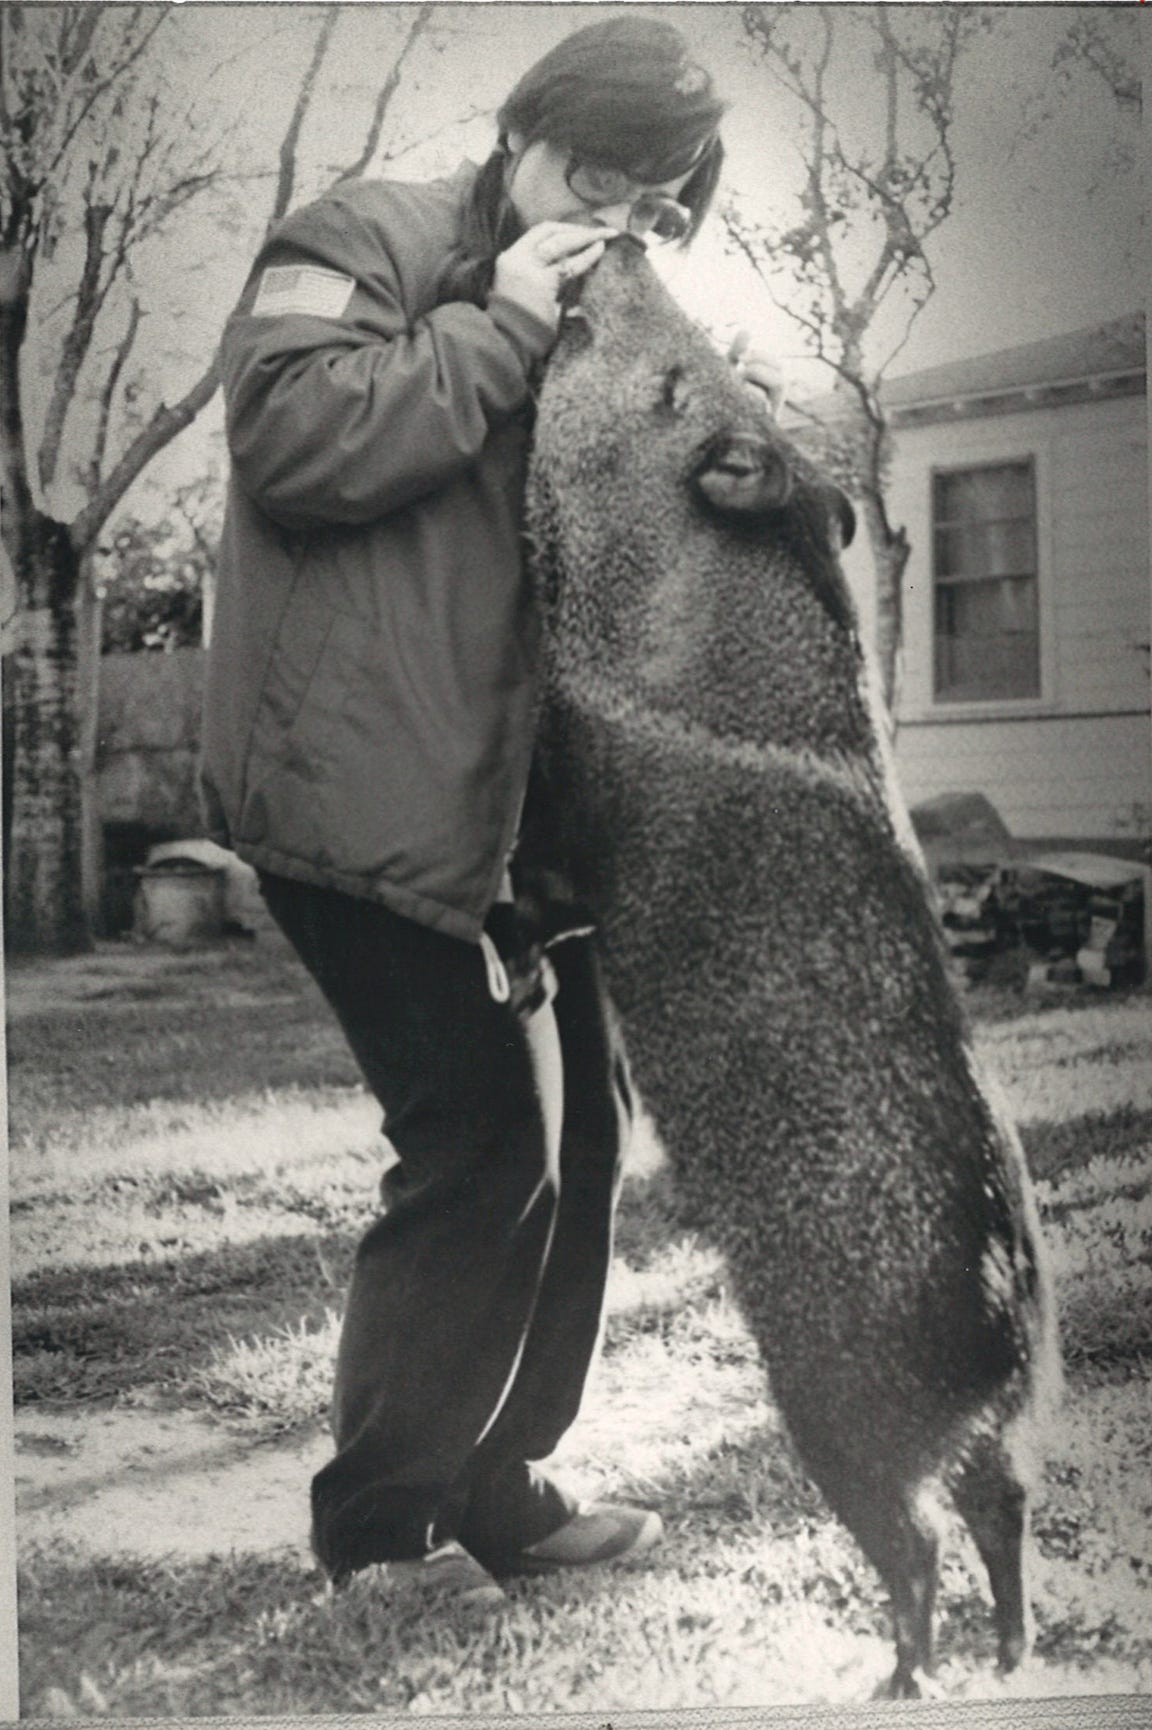 Patsy Thorne feeds Bubba a chocolate malt ball. Patsy and Buddy Thorne raised the javelina and kept him as a pet for years before he was confiscated by Texas Parks and Wildlife game wardens and released on a ranch. Bubba was never found again.